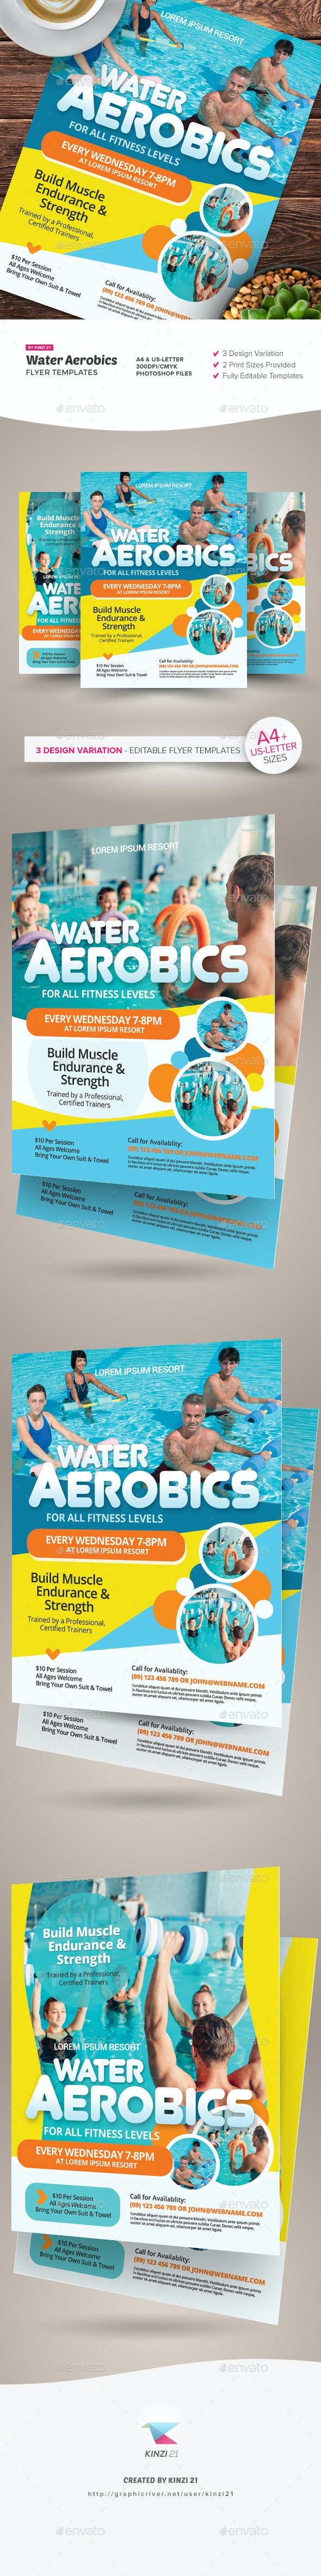 Water Aerobics Flyer Templates - Sports Events